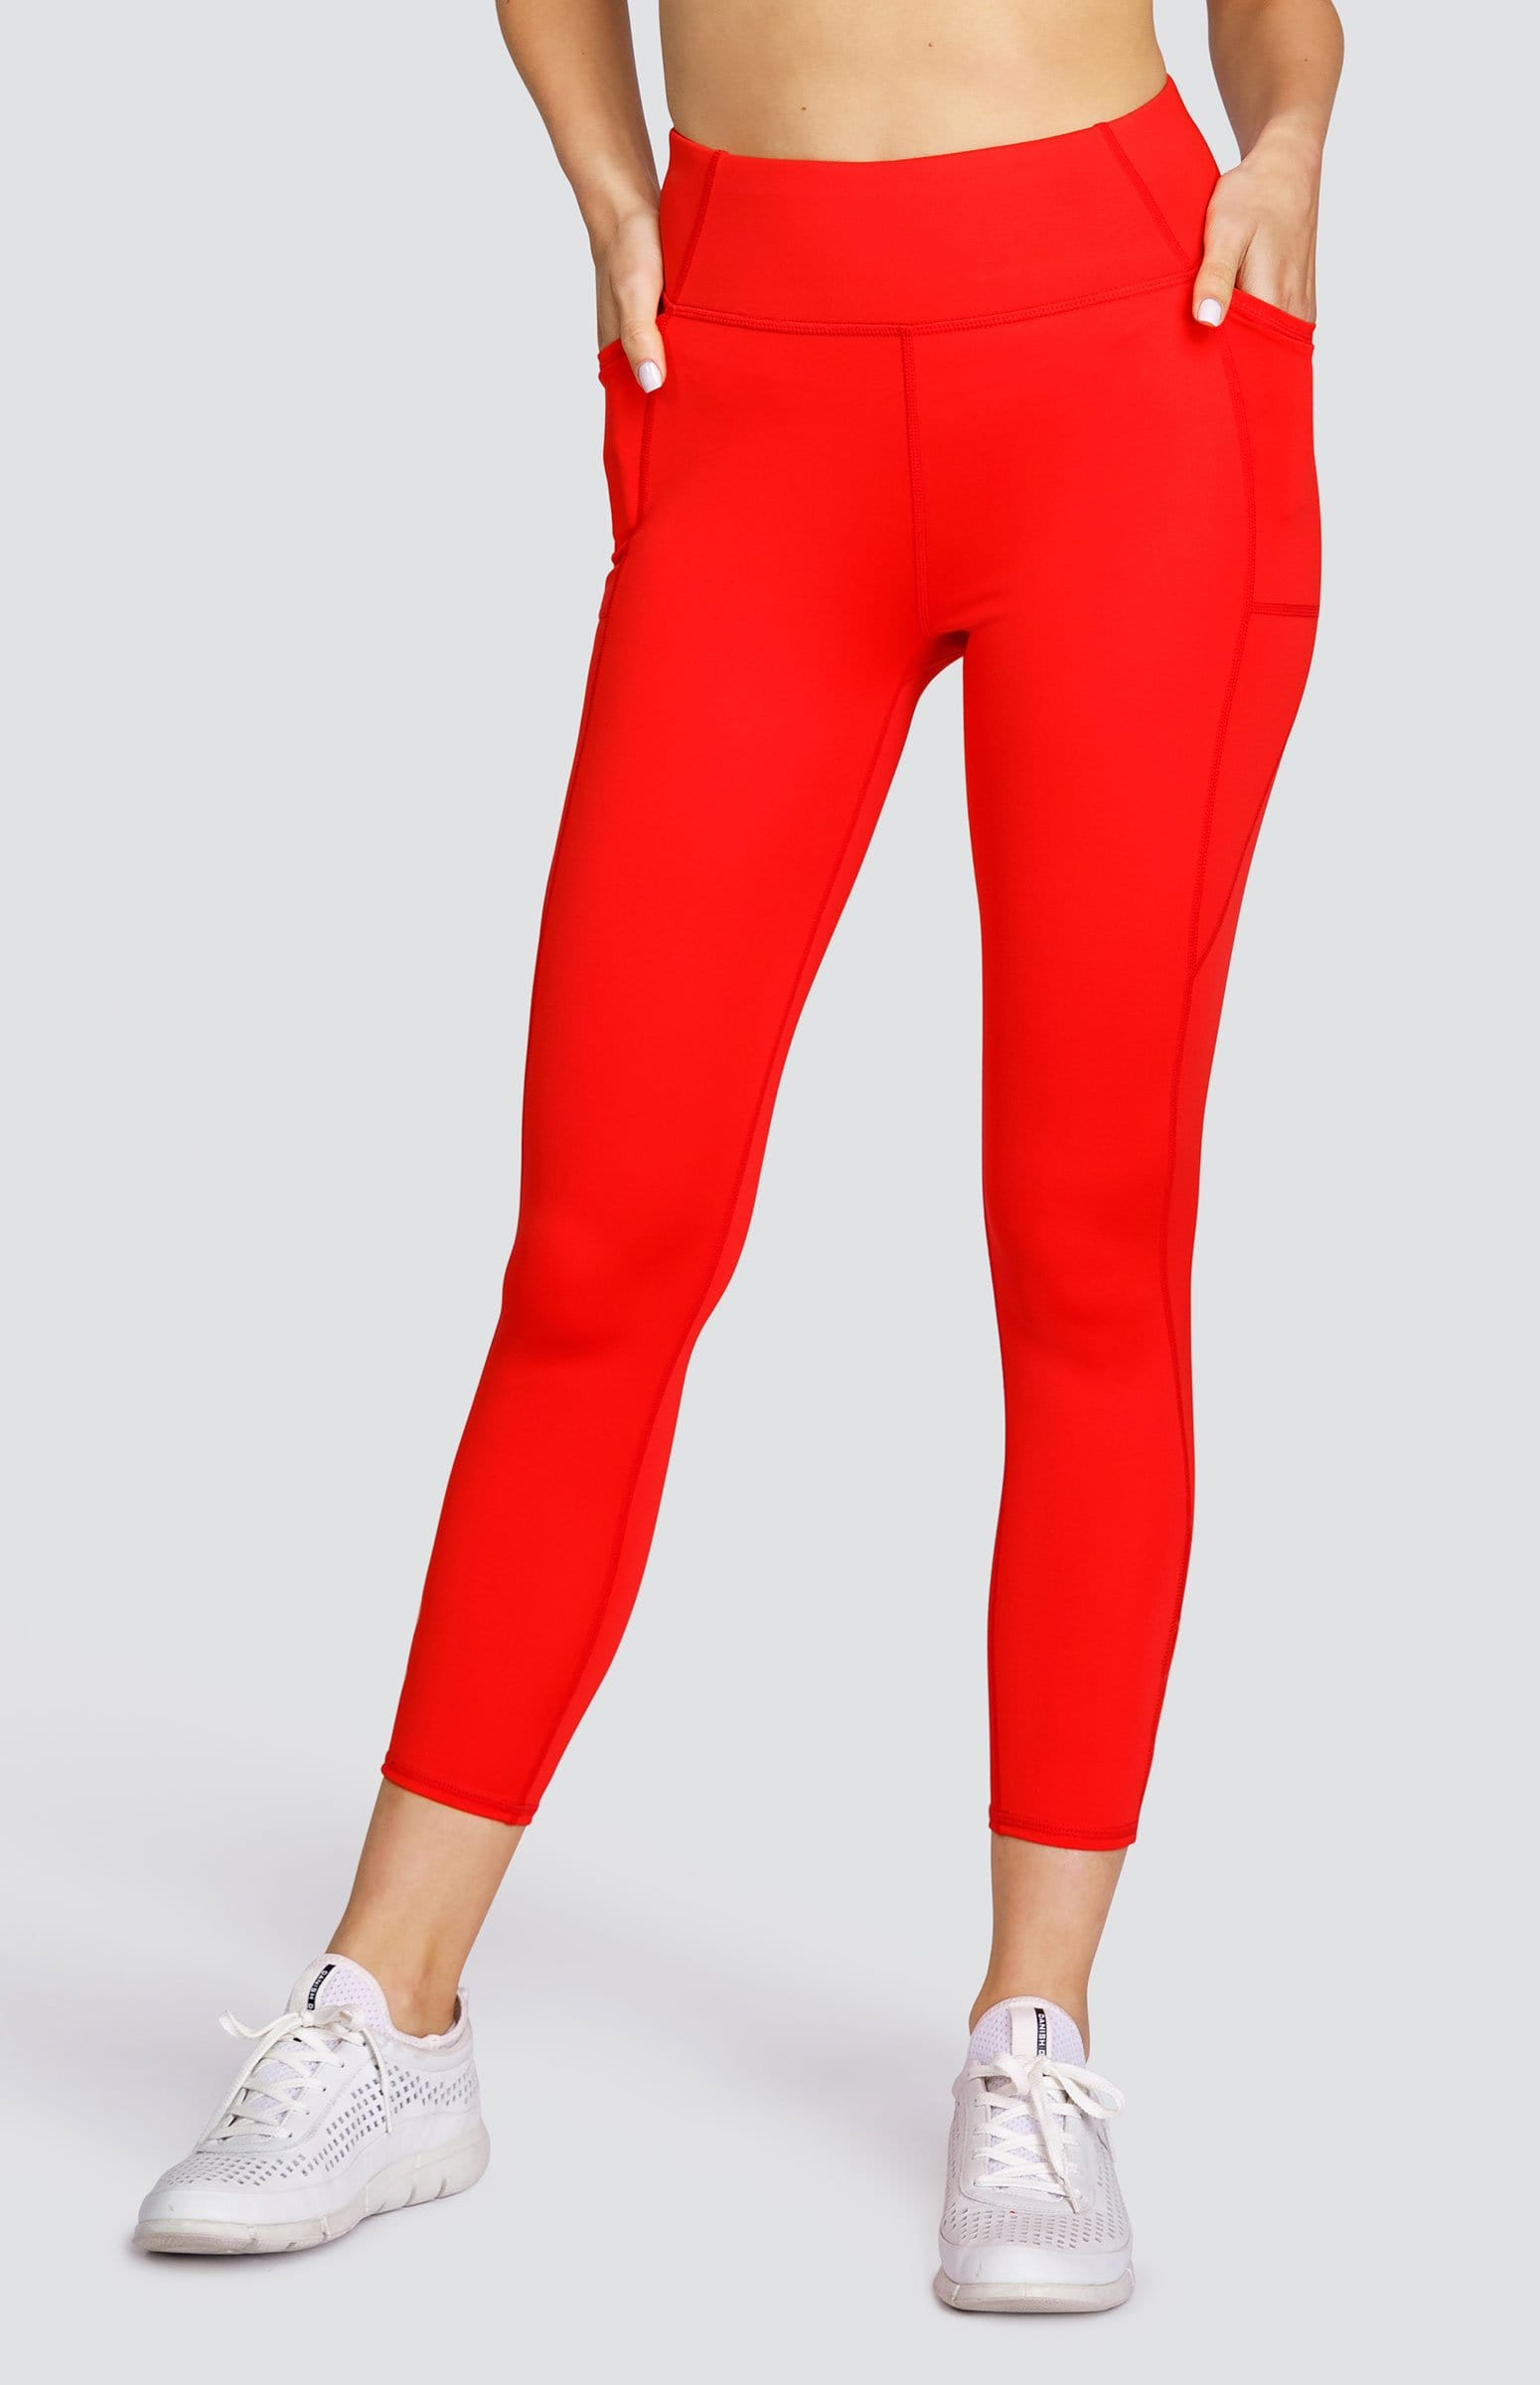 Ivory Leggings - Chili